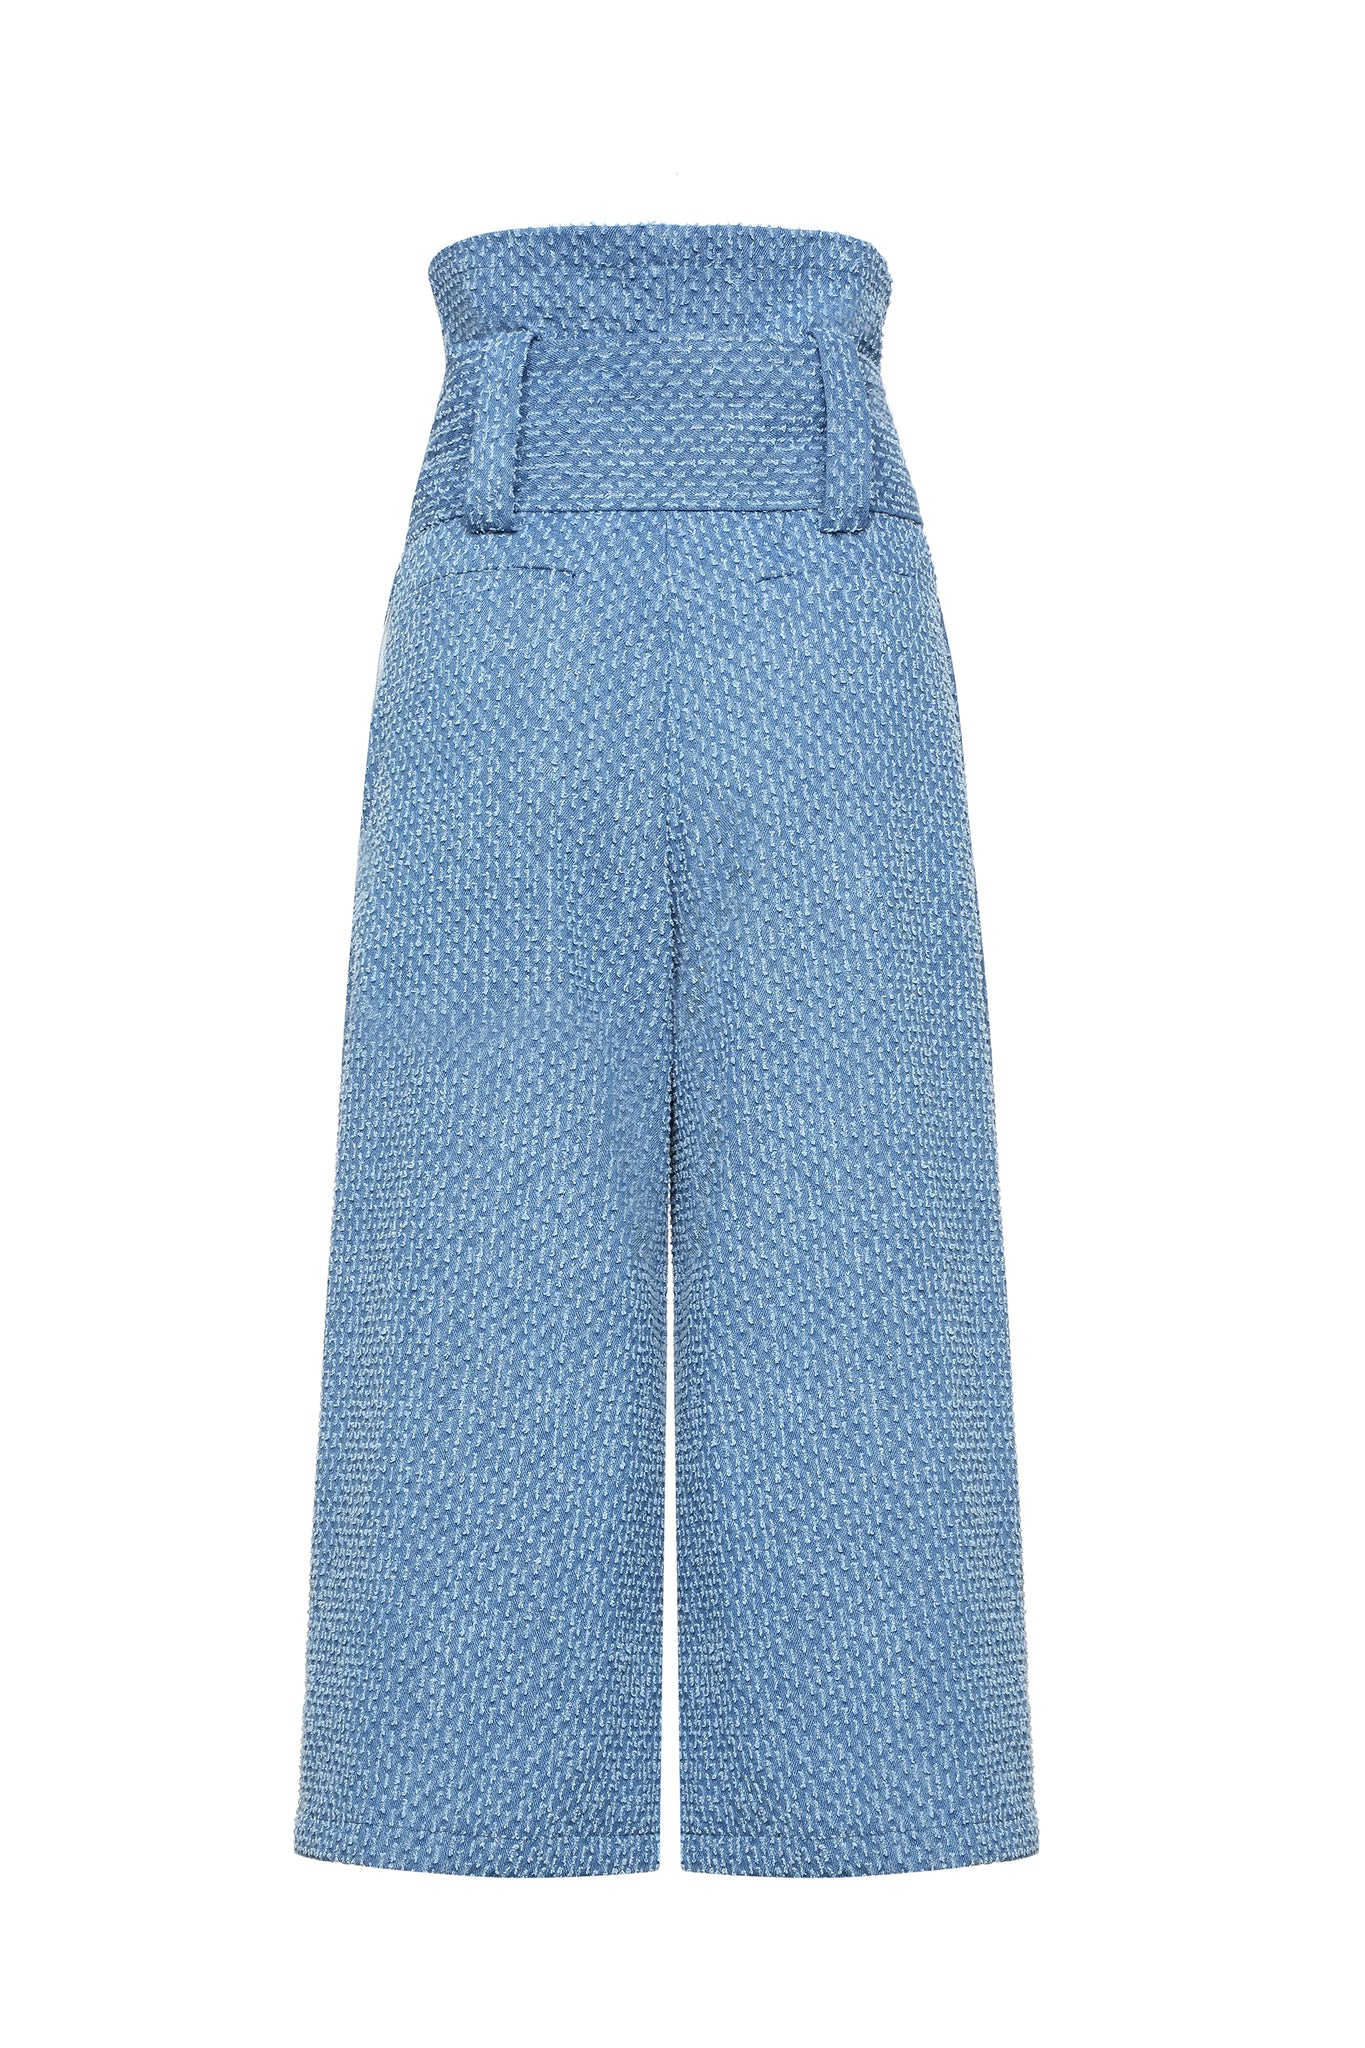 Culottes, Denim with Folds